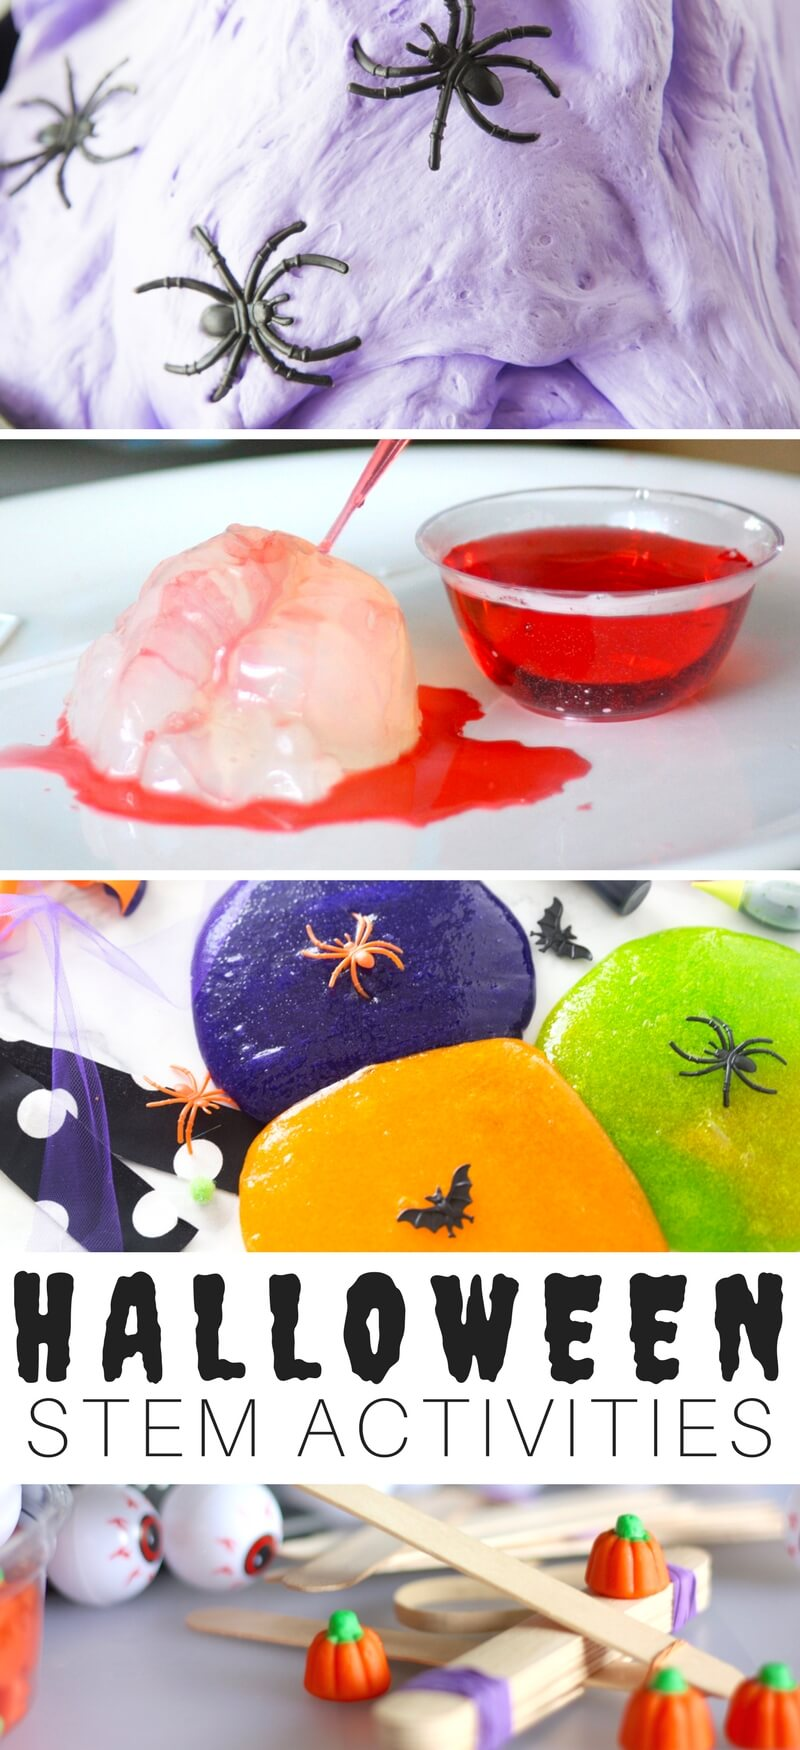 Halloween STEM Activities Calendar Free Printable Countdown To Halloween with Science Experiments and STEM